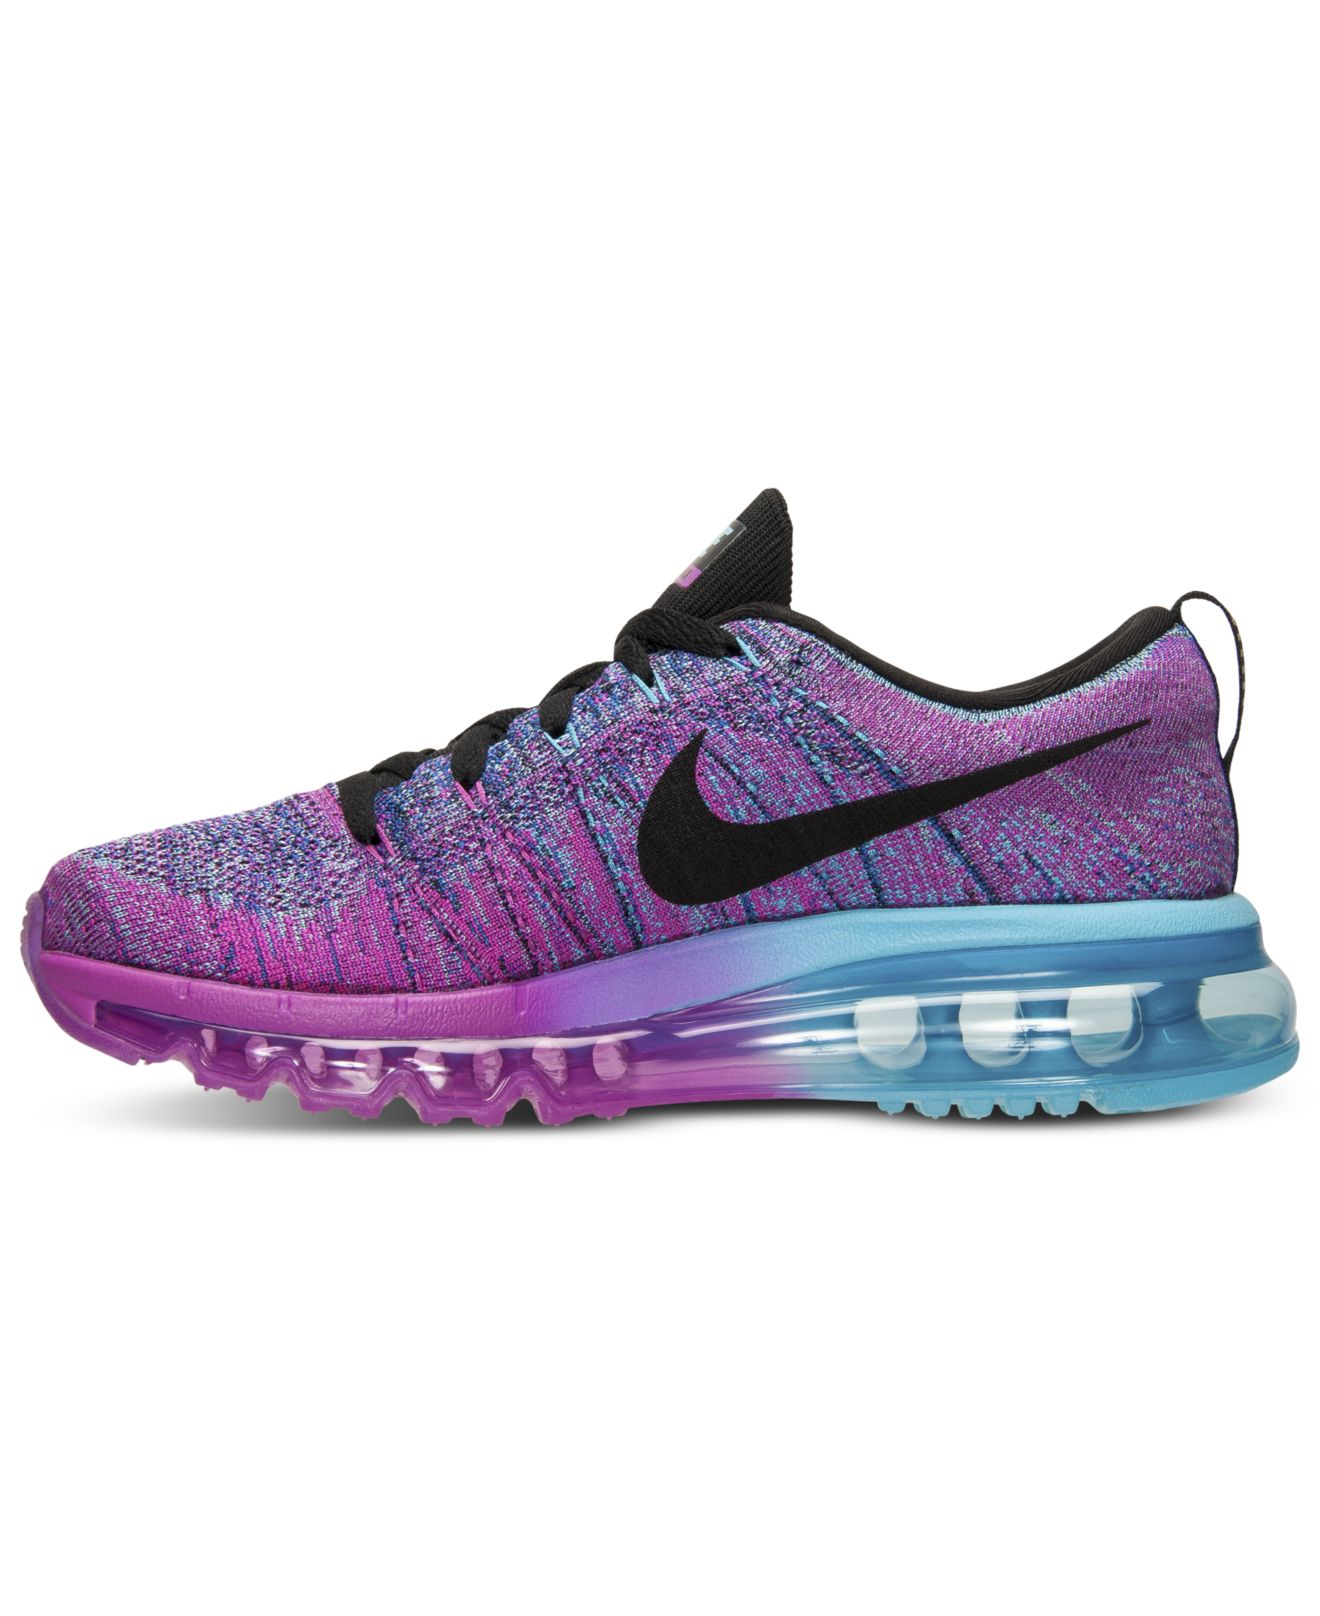 Nike Flyknit Air Max Womens Chaussure De Course 225 $ Canadien